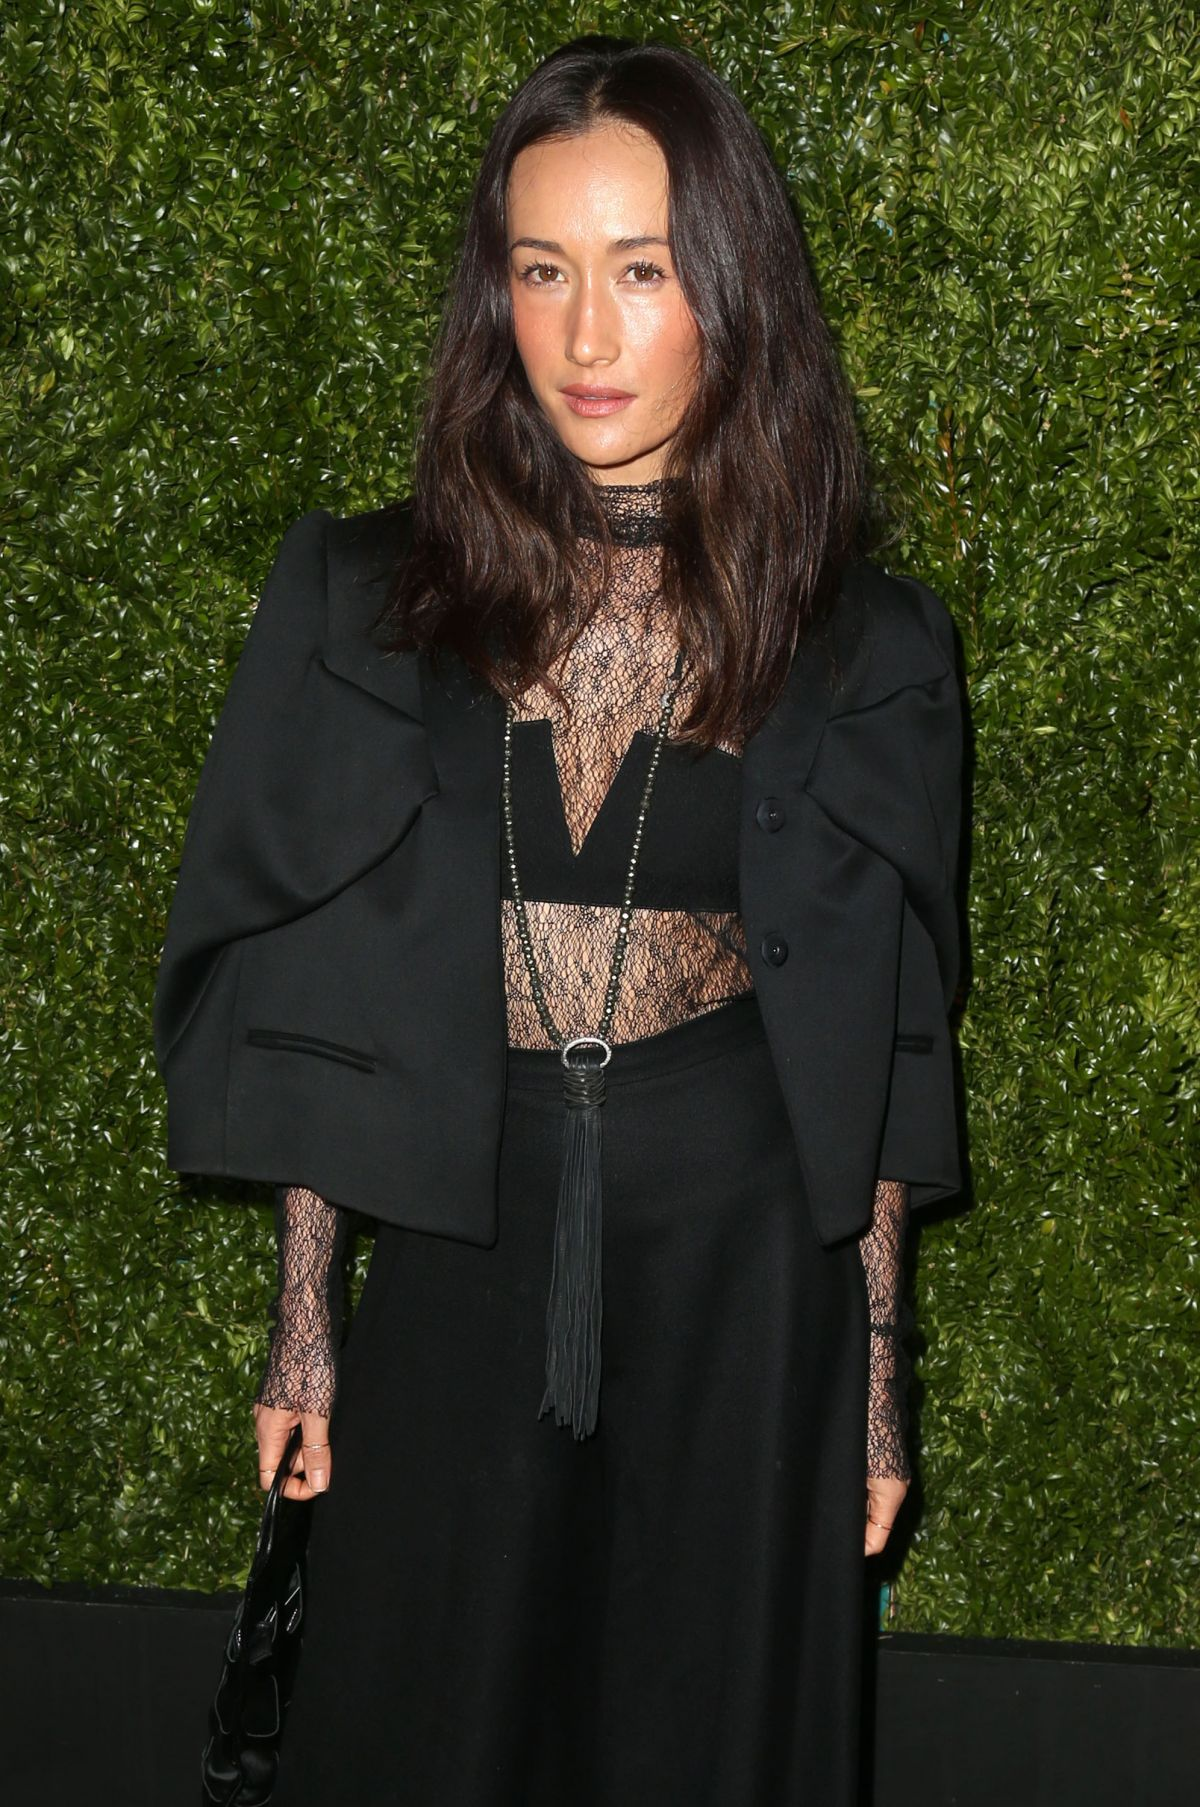 MAGGIE Q at Chanel Dinner at Tribeca Film Festival in New York